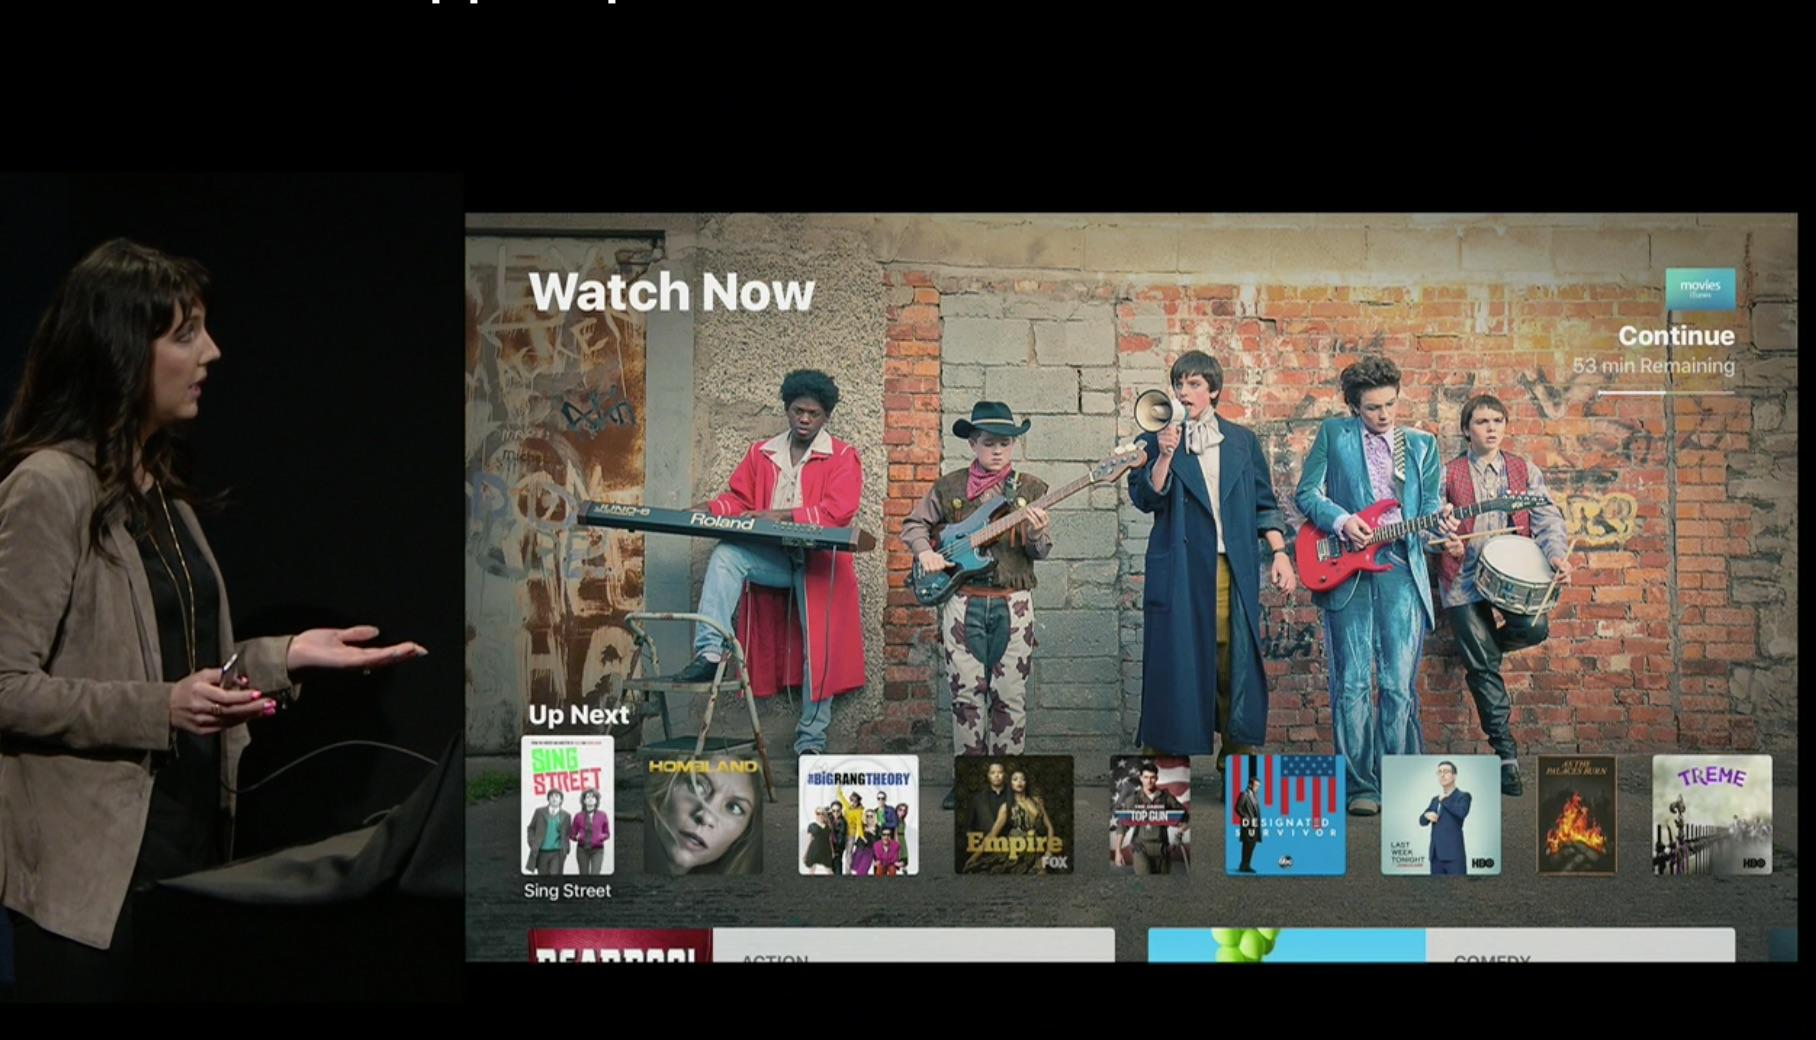 Apple Announces New TV Aggregation App for Apple TV, iPhone and iPad, but Without Netflix